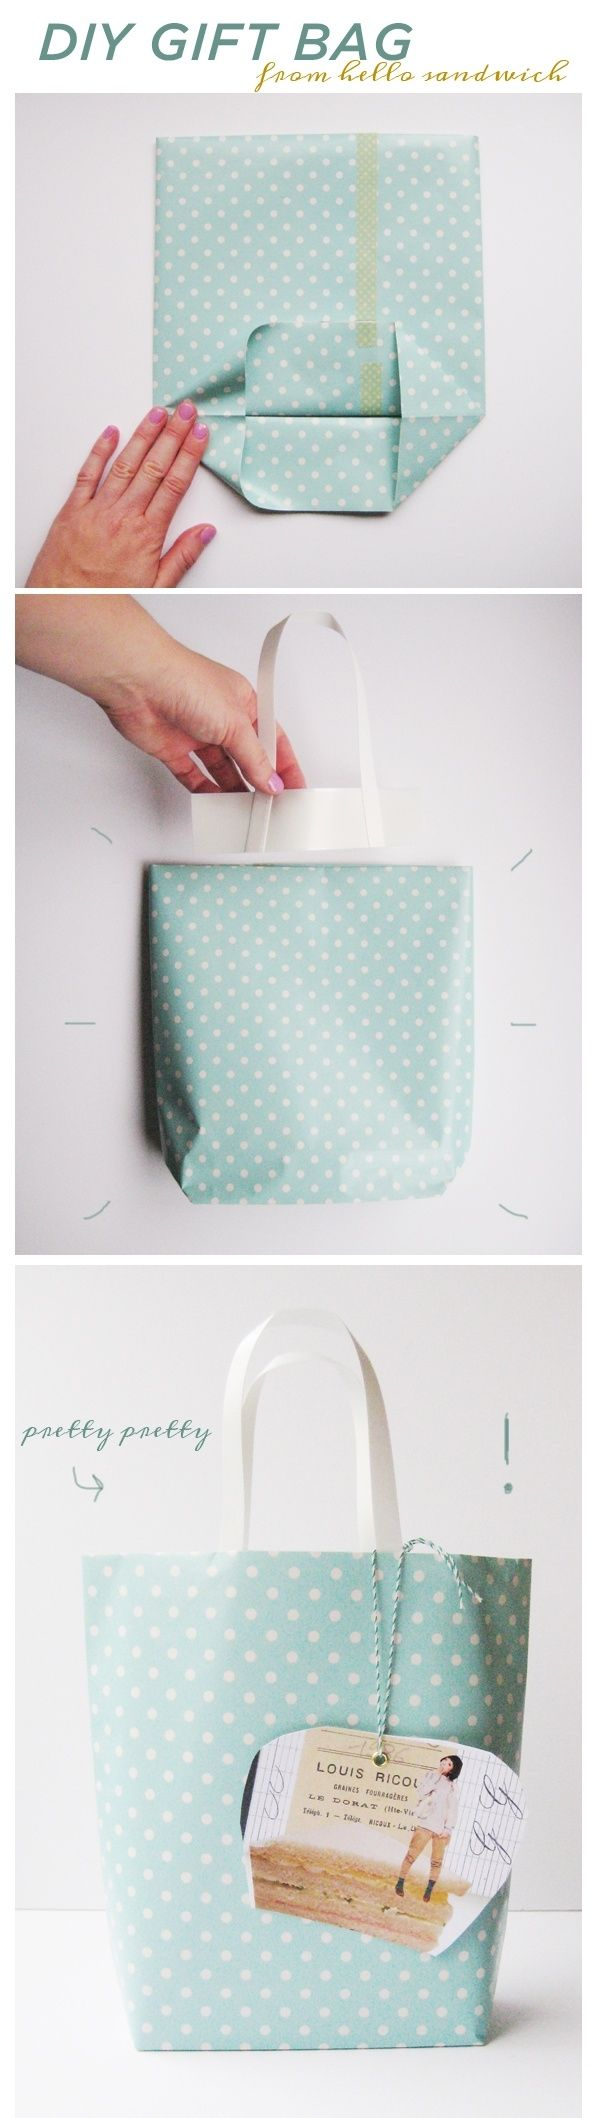 Diy Gift Bag Pictures, Photos, and Images for Facebook, Tumblr, Pinterest, and Twitter